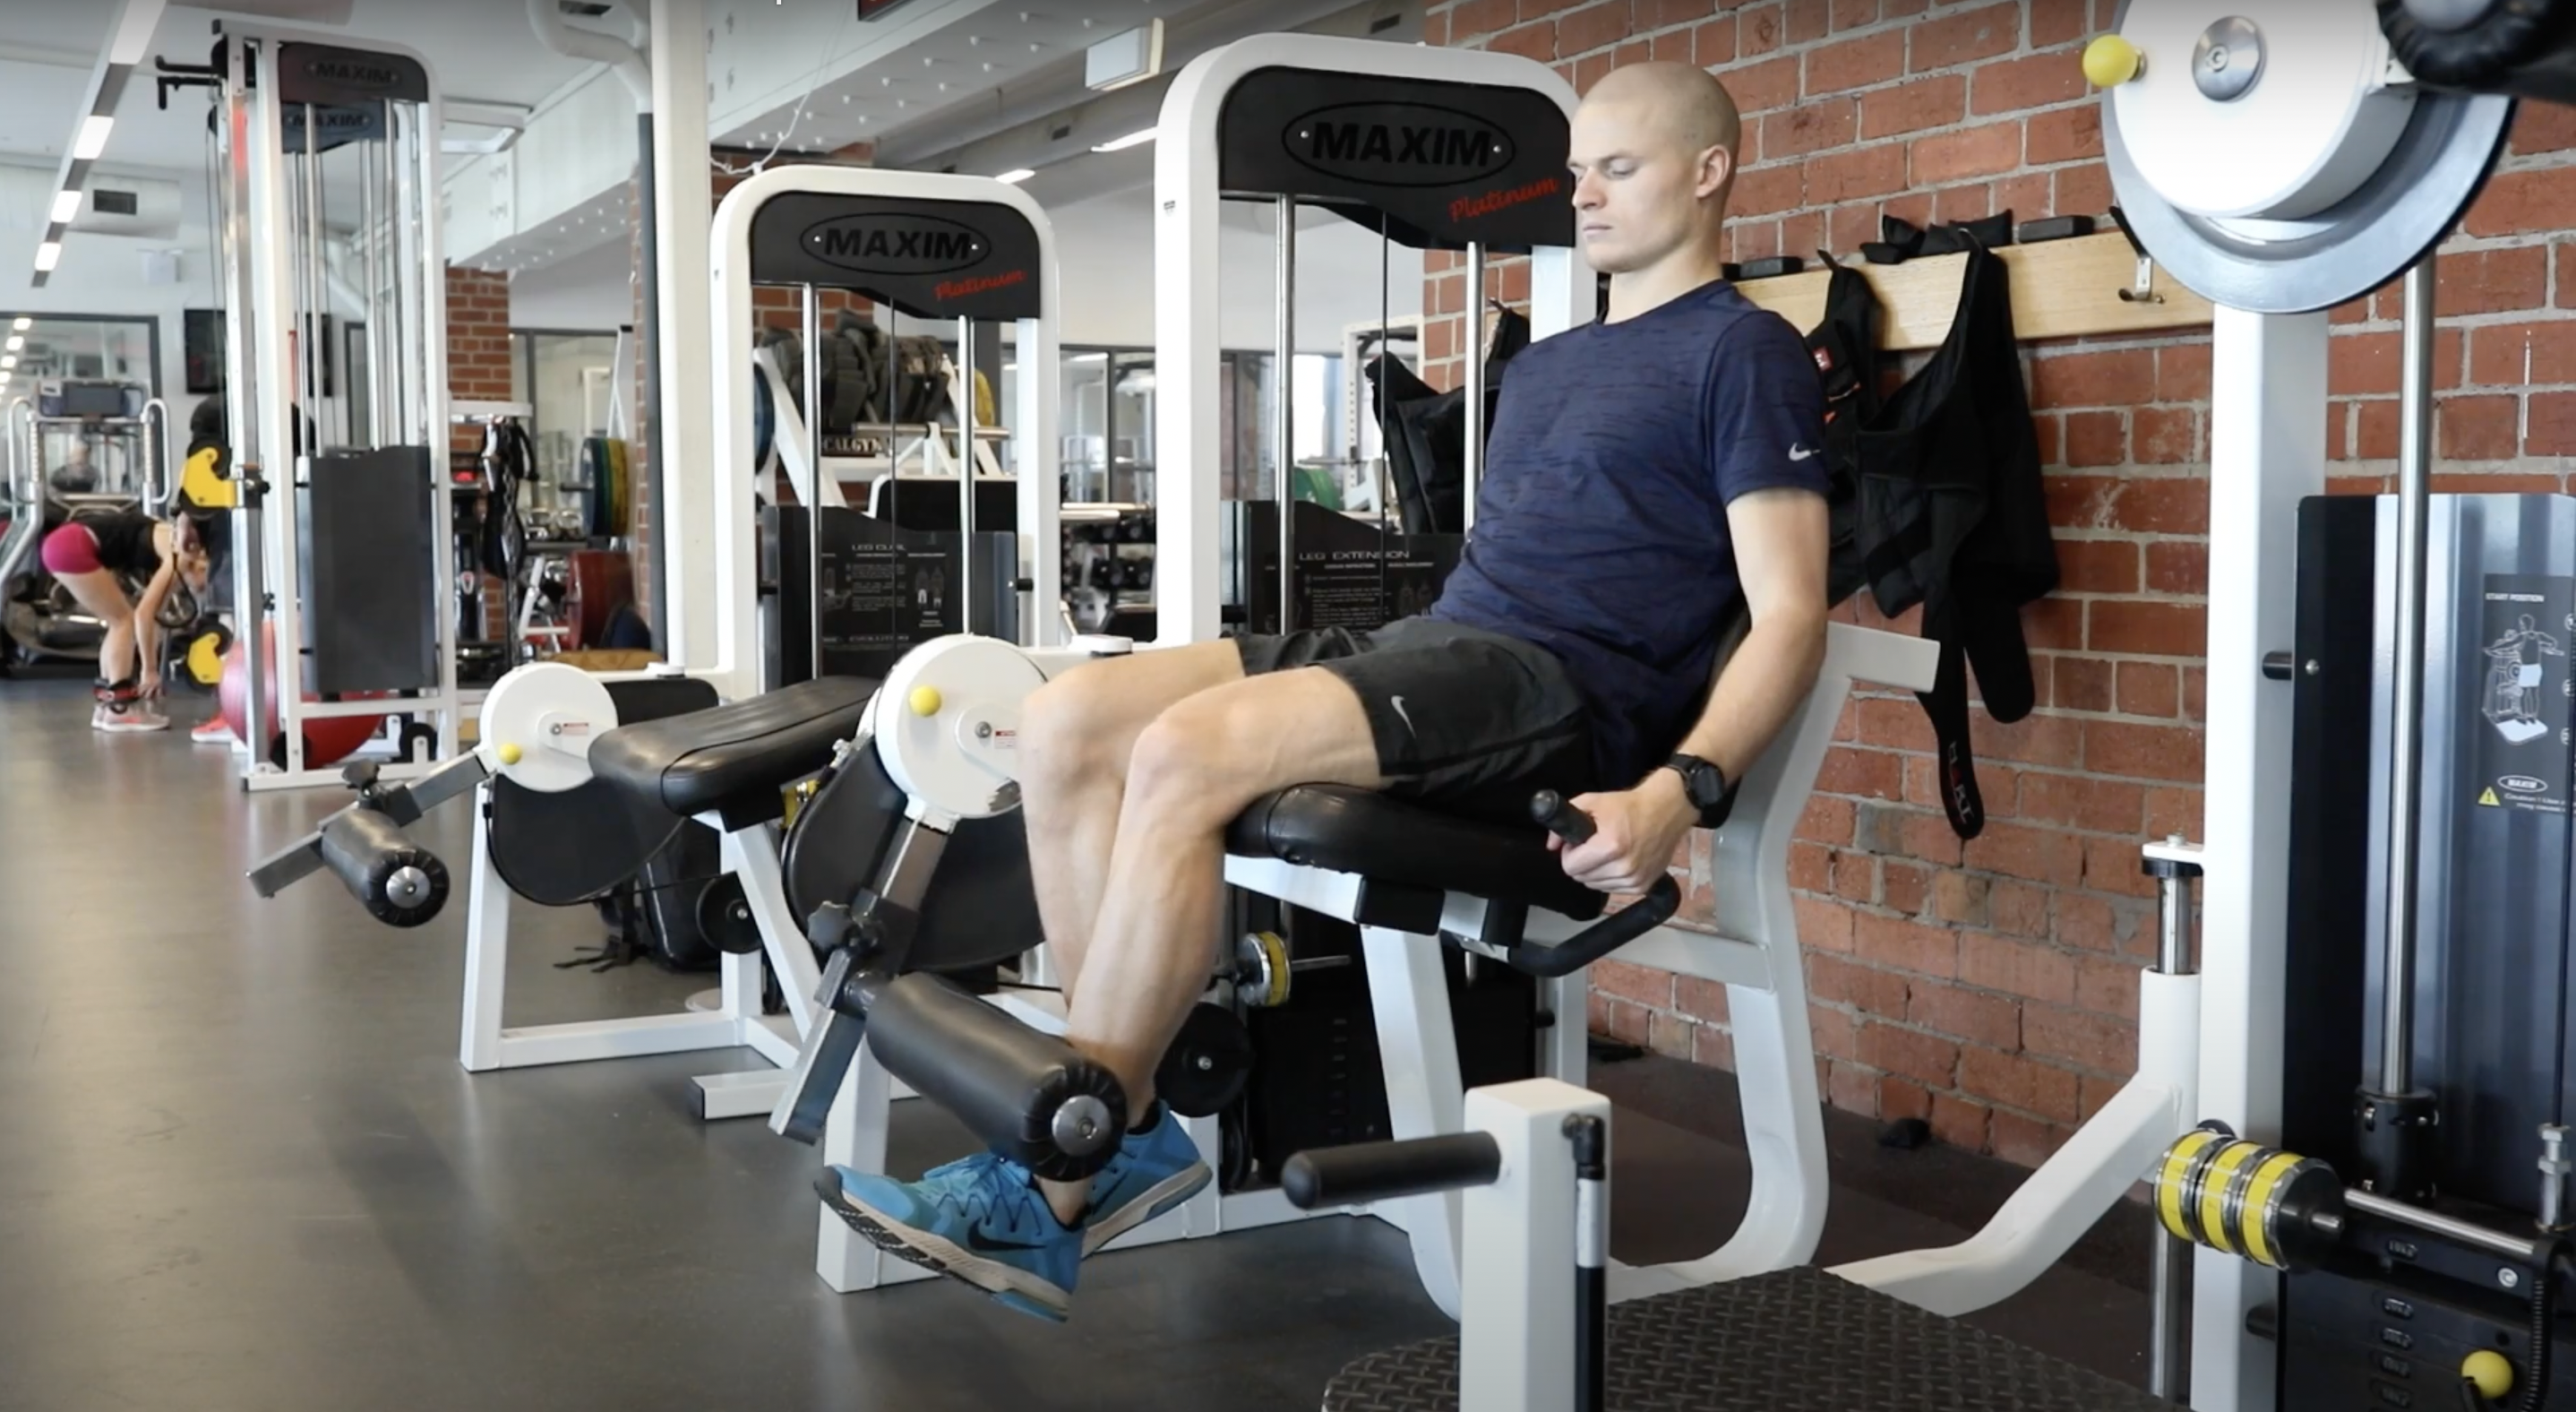 Image: ACL Rehab Post Reconstruction